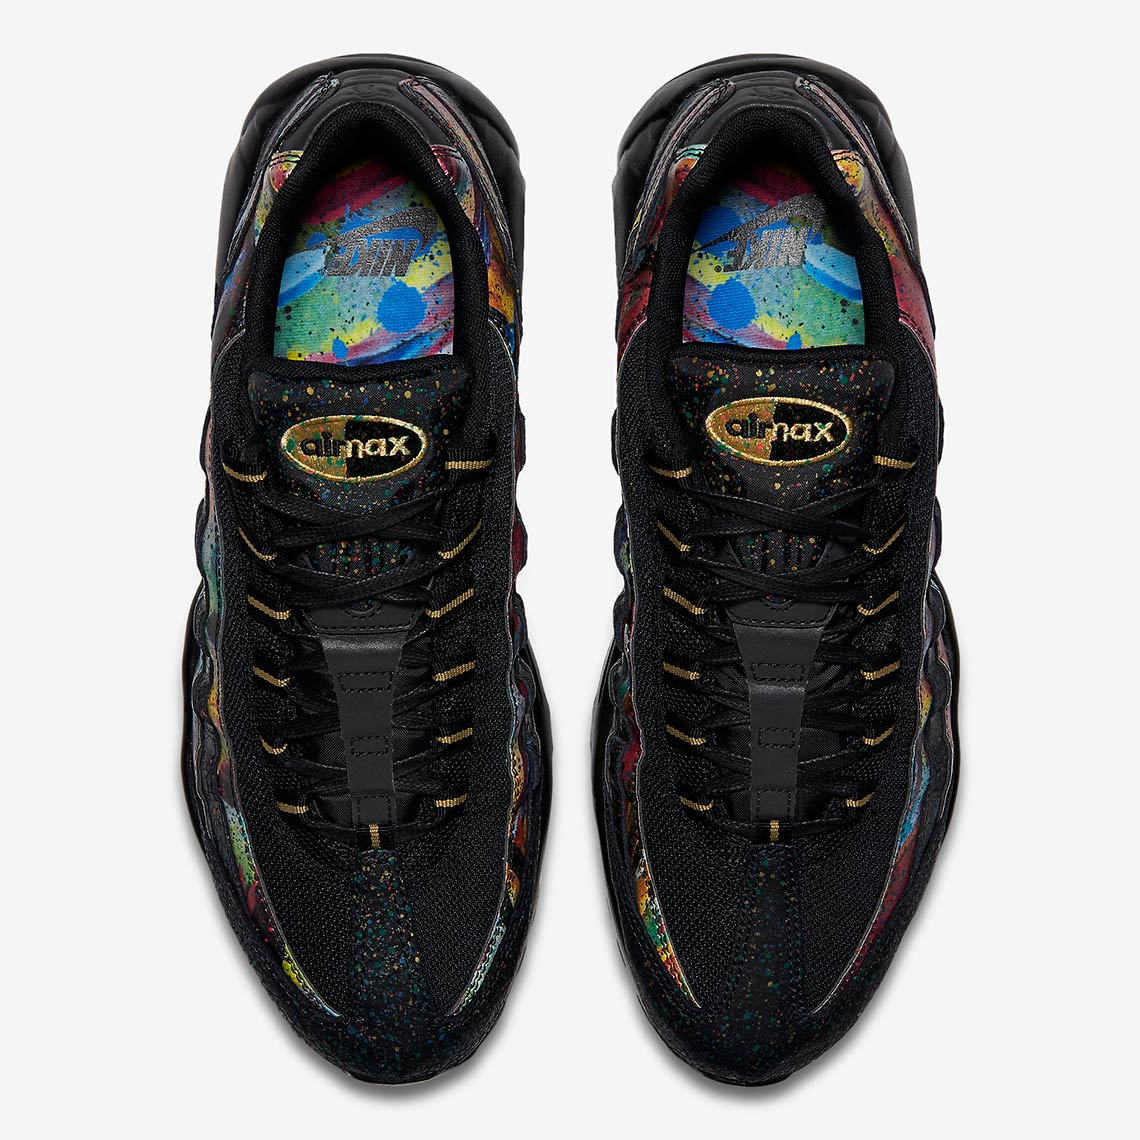 c66e5bfcd30e7c Color  Black Metallic Gold Cobalt Blaze Style Code  AT6142-001. Where to  Buy  Nike Air Max 95. Foot LockerAvailable Now  FootactionAvailable Now